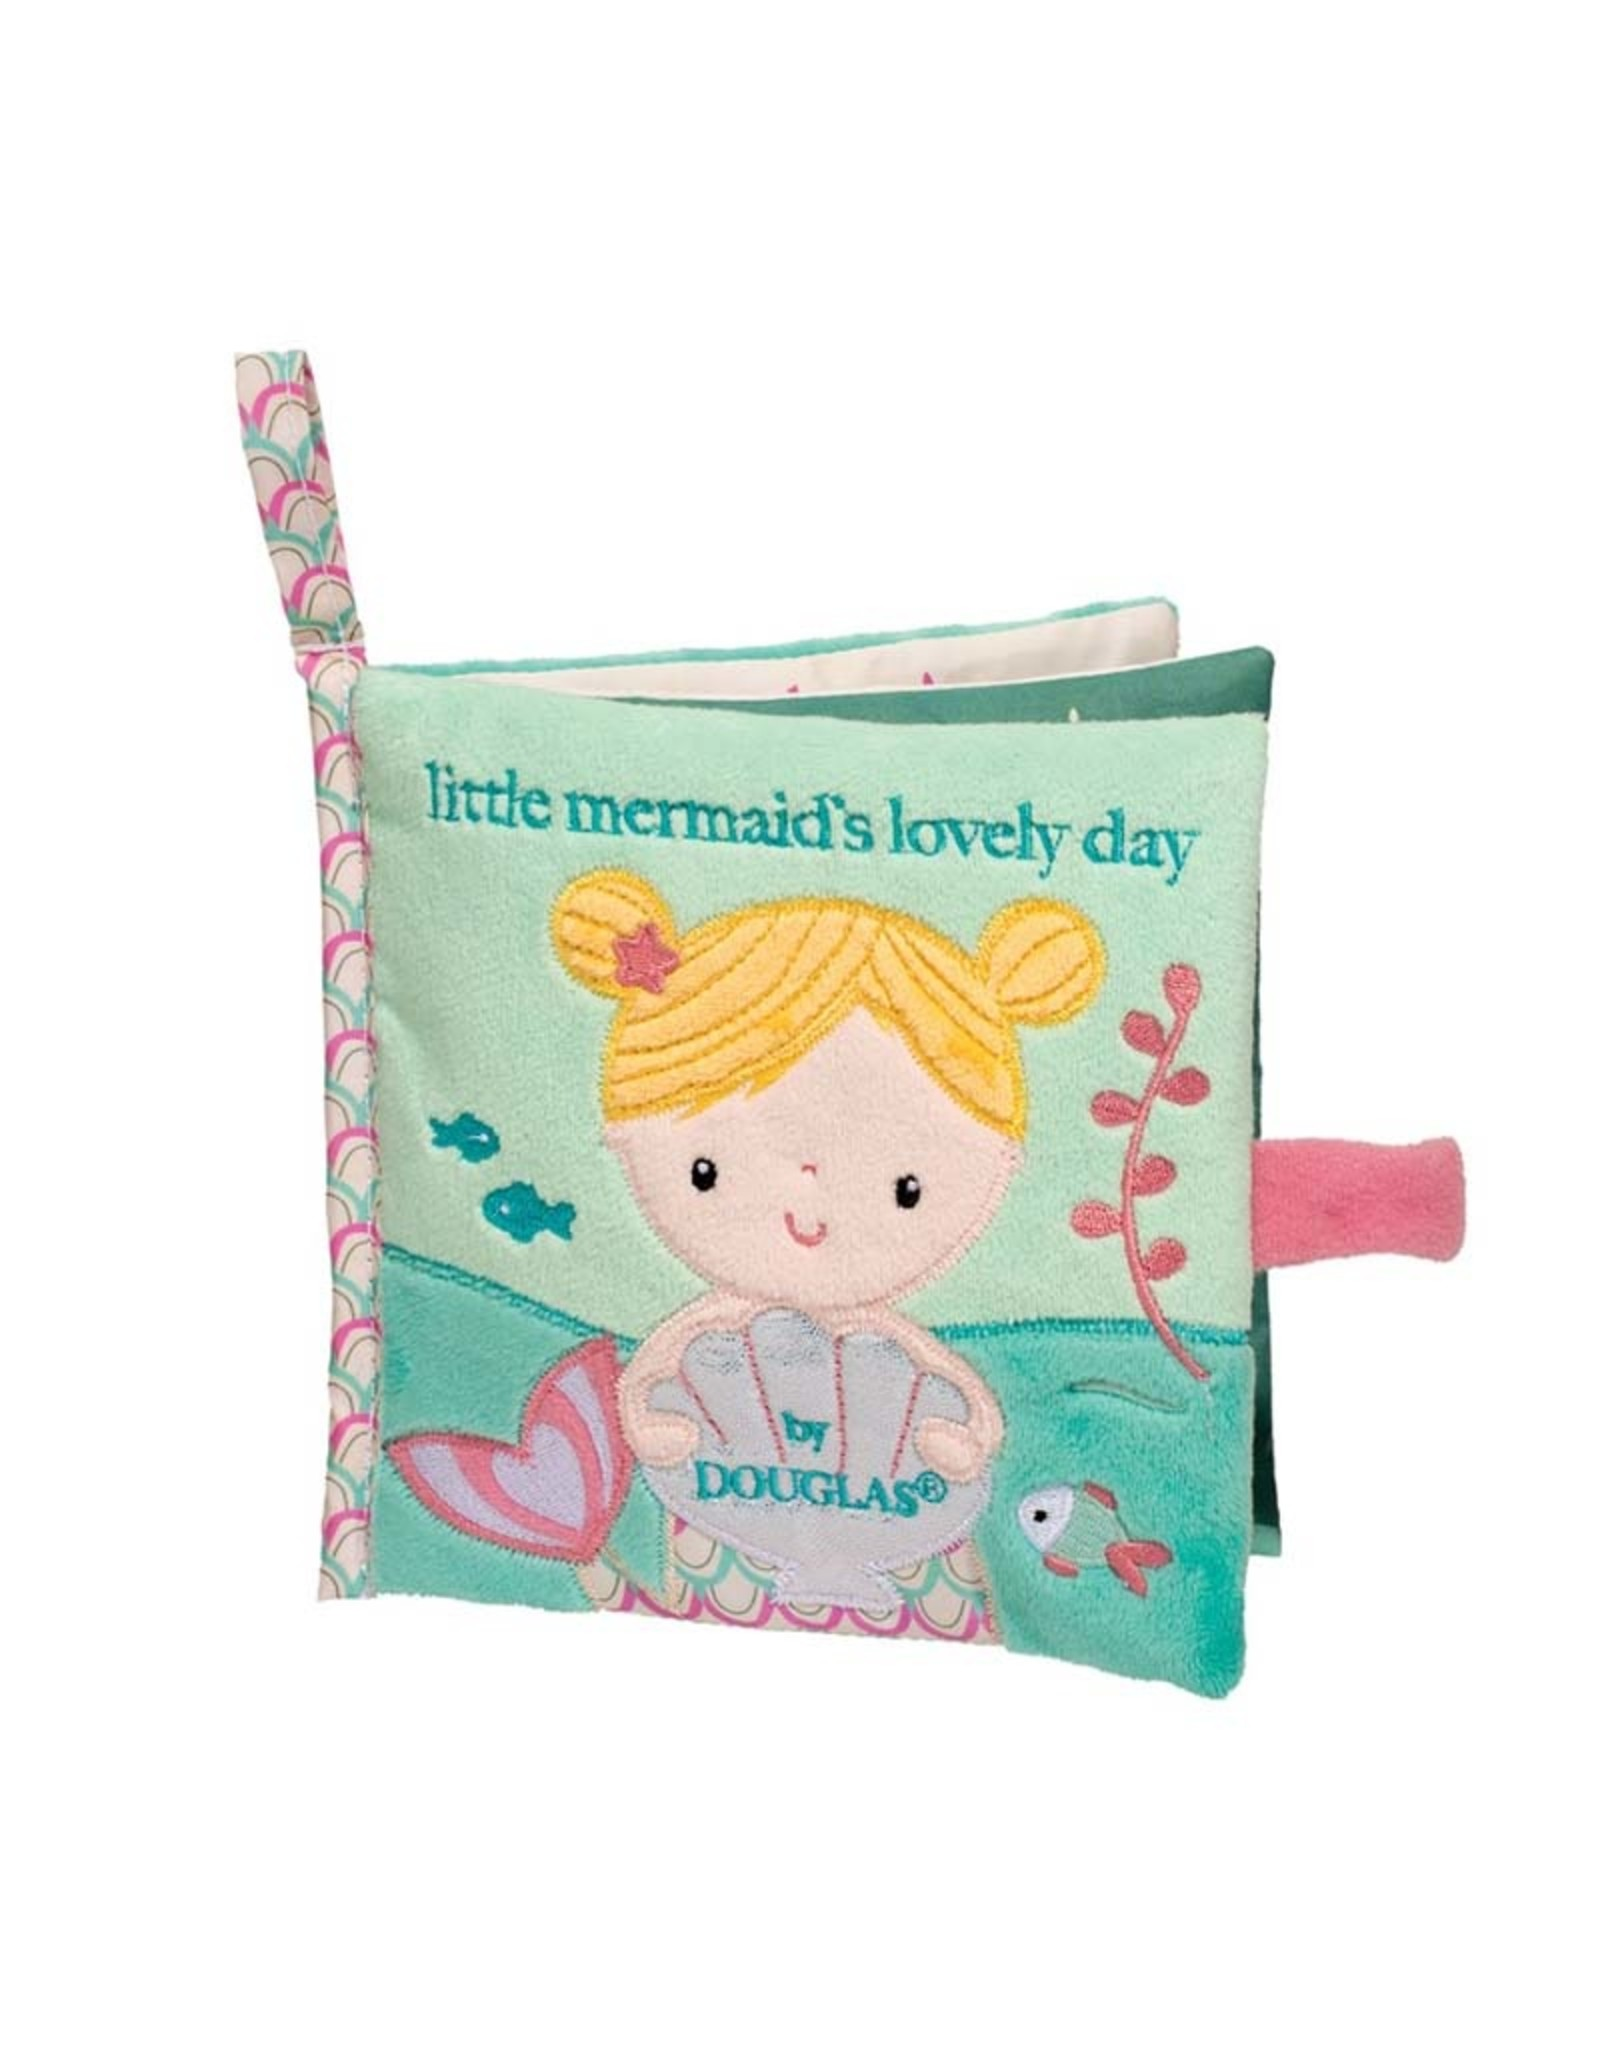 Douglas Little Mermaid's Lovely Day